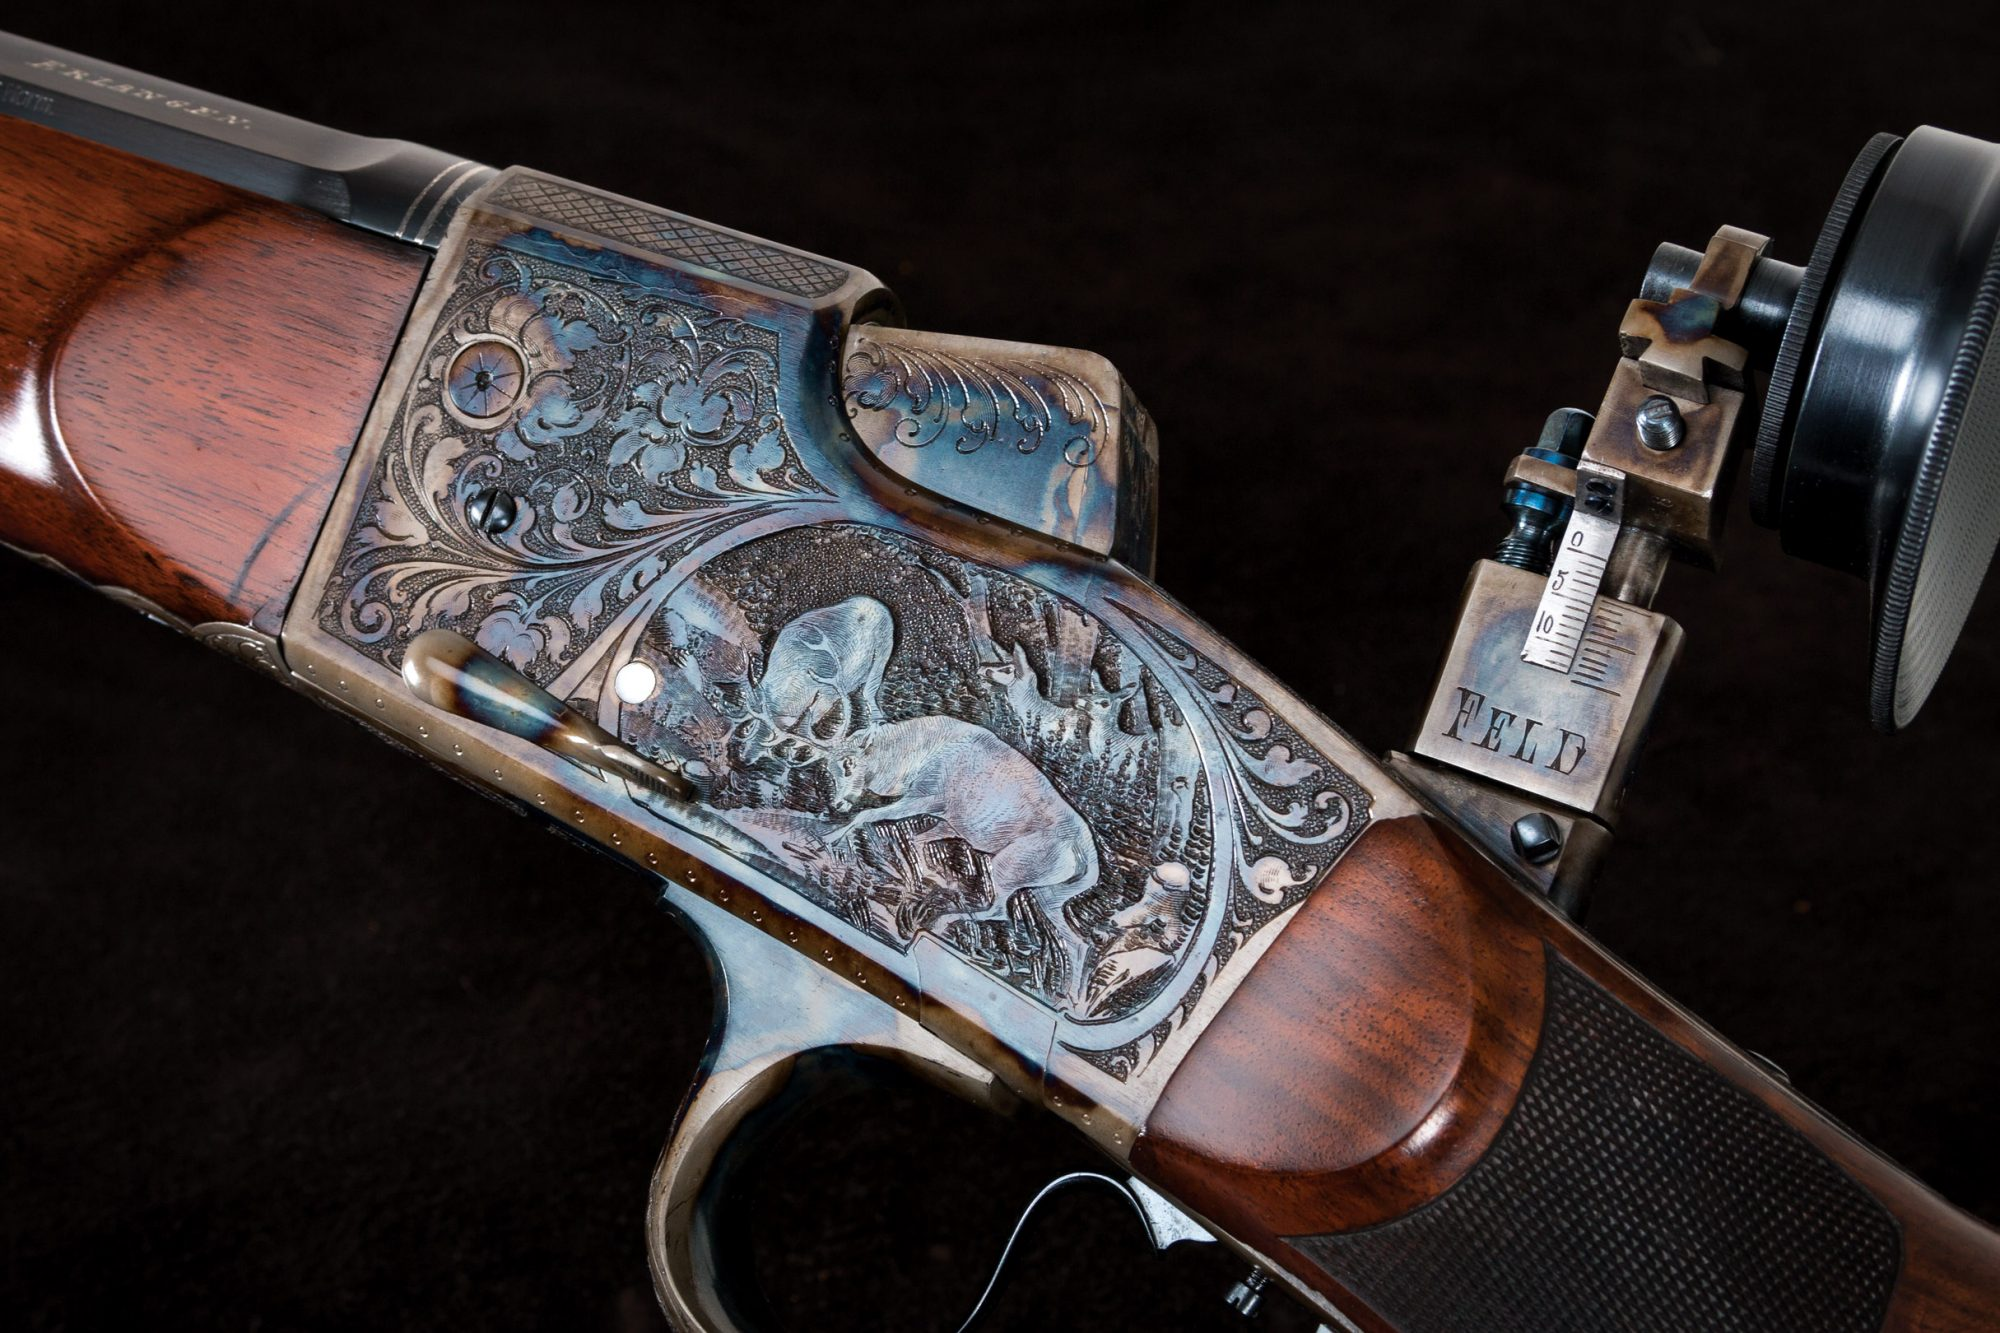 Restored color case hardened and engraved German gun receiver, originally manufactured in the 1920s, restored by Turnbull Restoration and featuring all period-correct metal and wood finishes